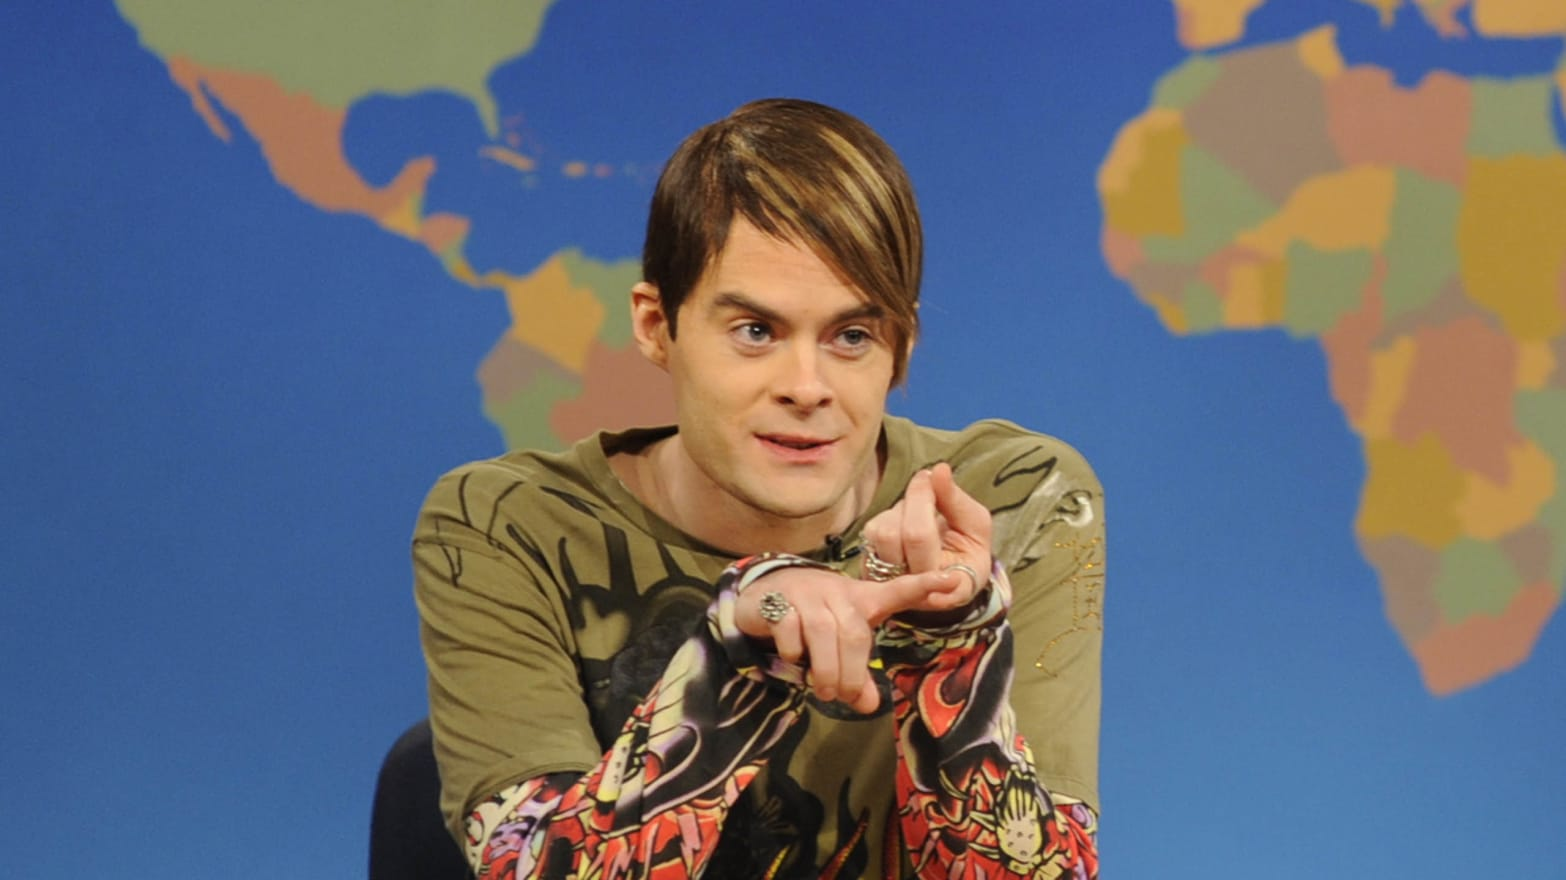 Bill Hader Is Sad To Leave Saturday Night Live And Stefon Behind